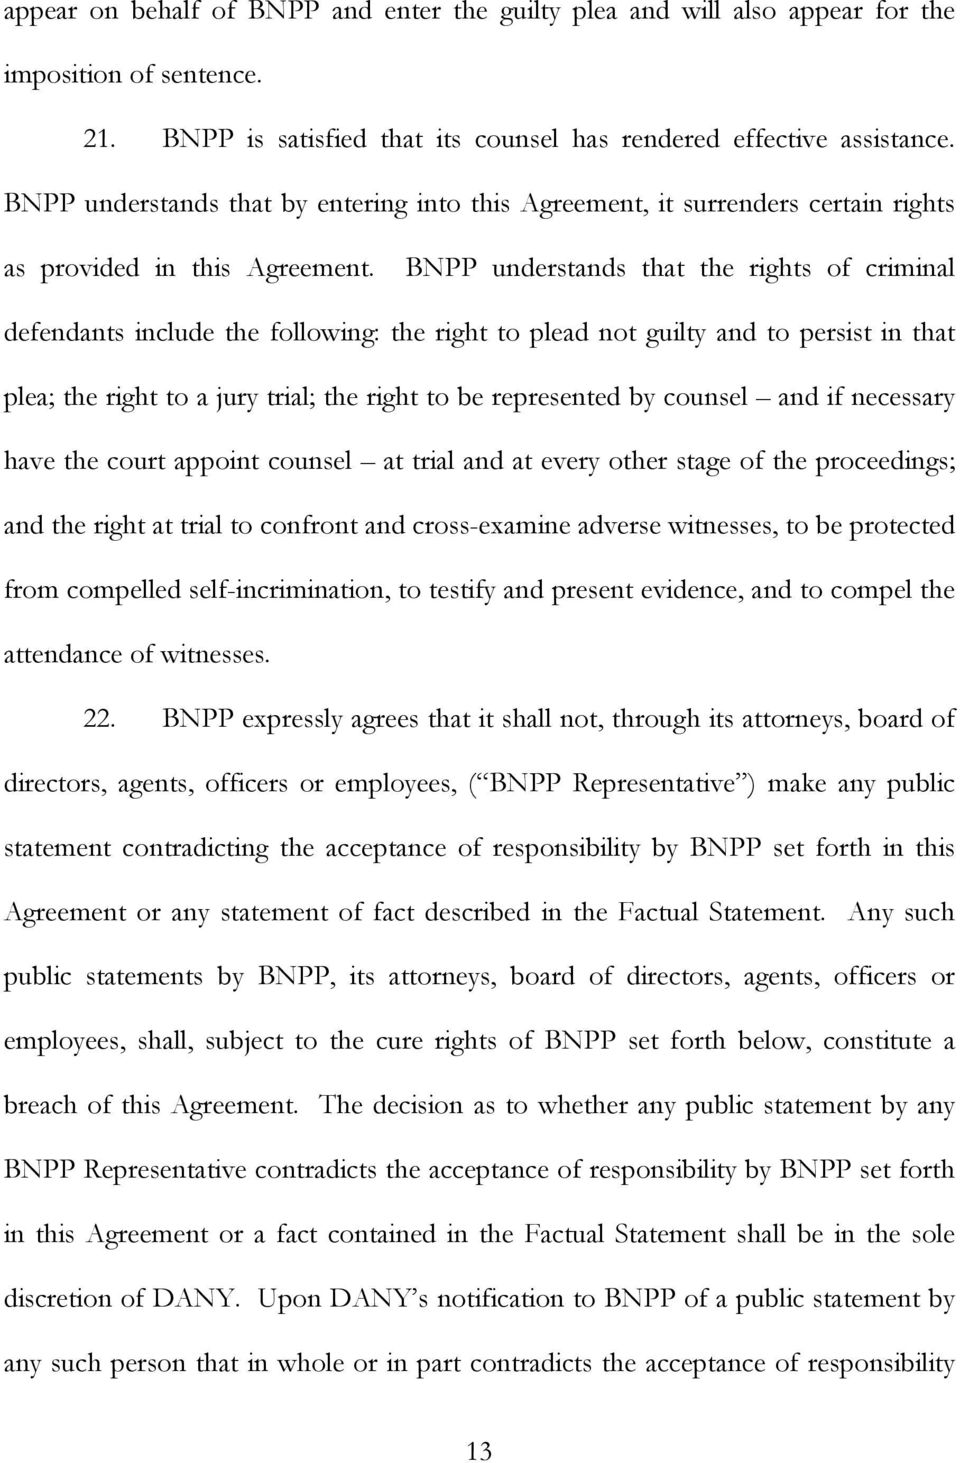 BNPP understands that the rights of criminal defendants include the following: the right to plead not guilty and to persist in that plea; the right to a jury trial; the right to be represented by